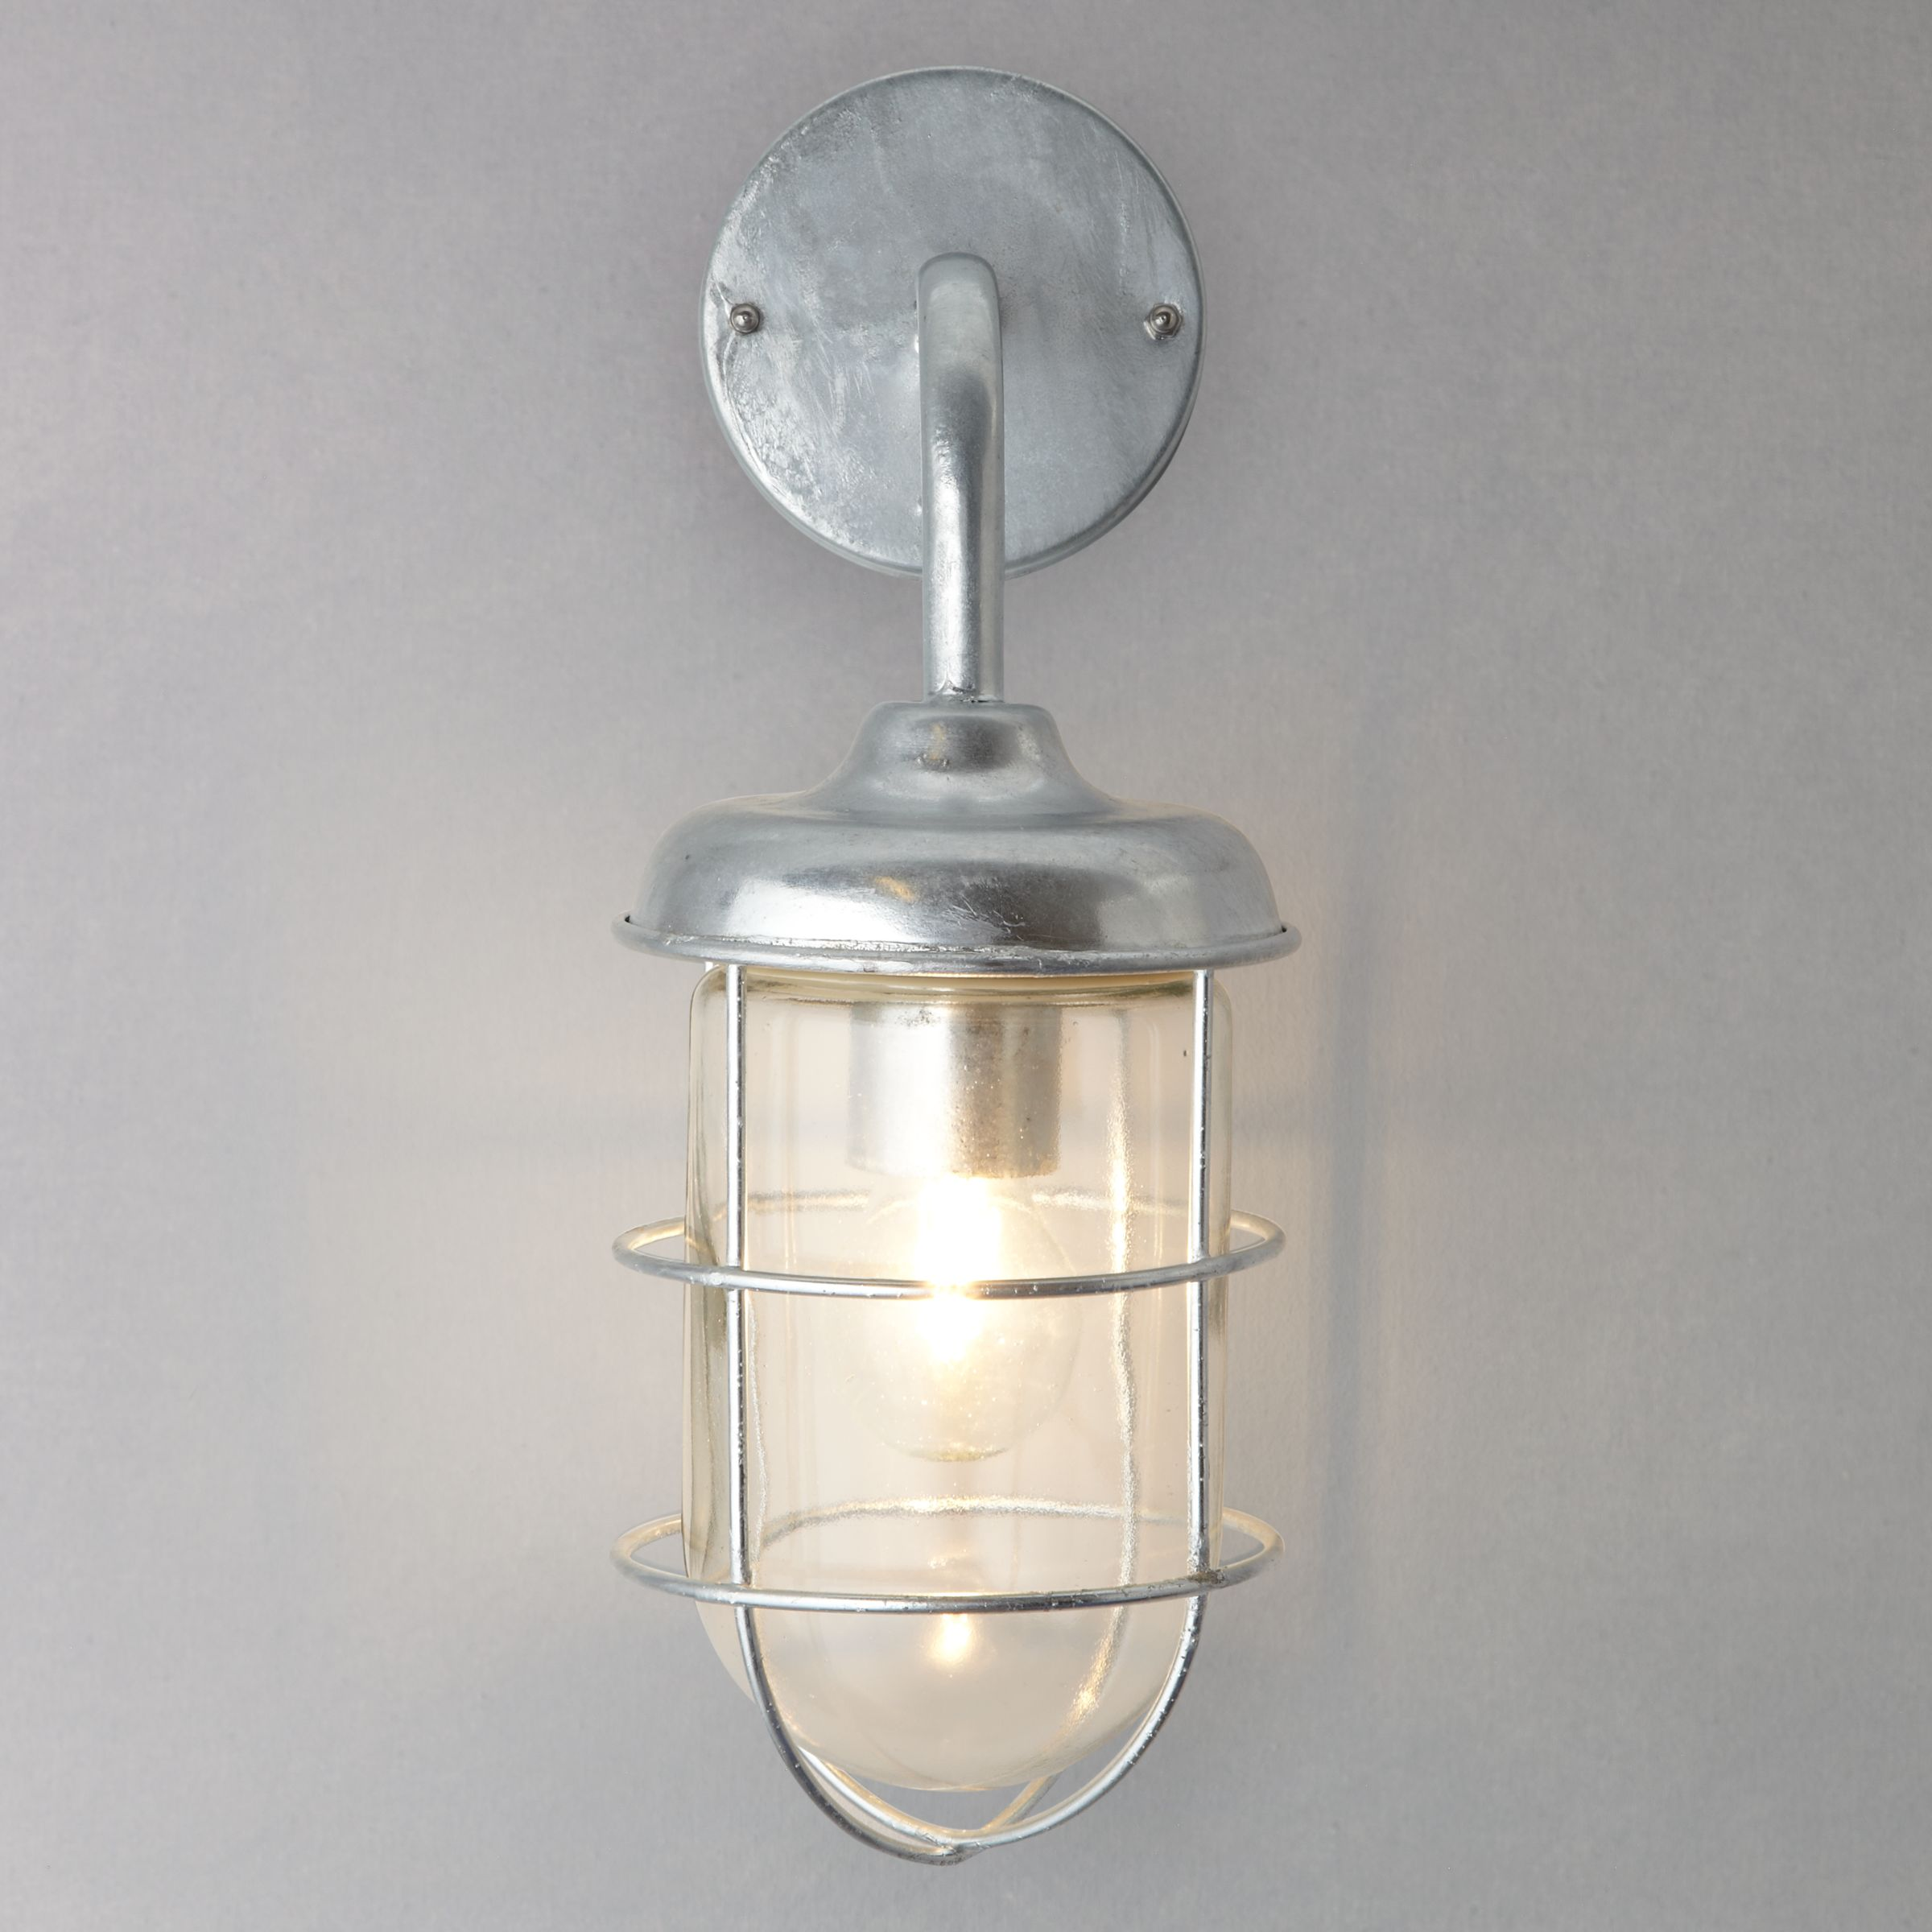 Garden Trading Outdoor Wall Lights : Buy Garden Trading Company St Ives Harbour Galvanised Outdoor Wall Light John Lewis